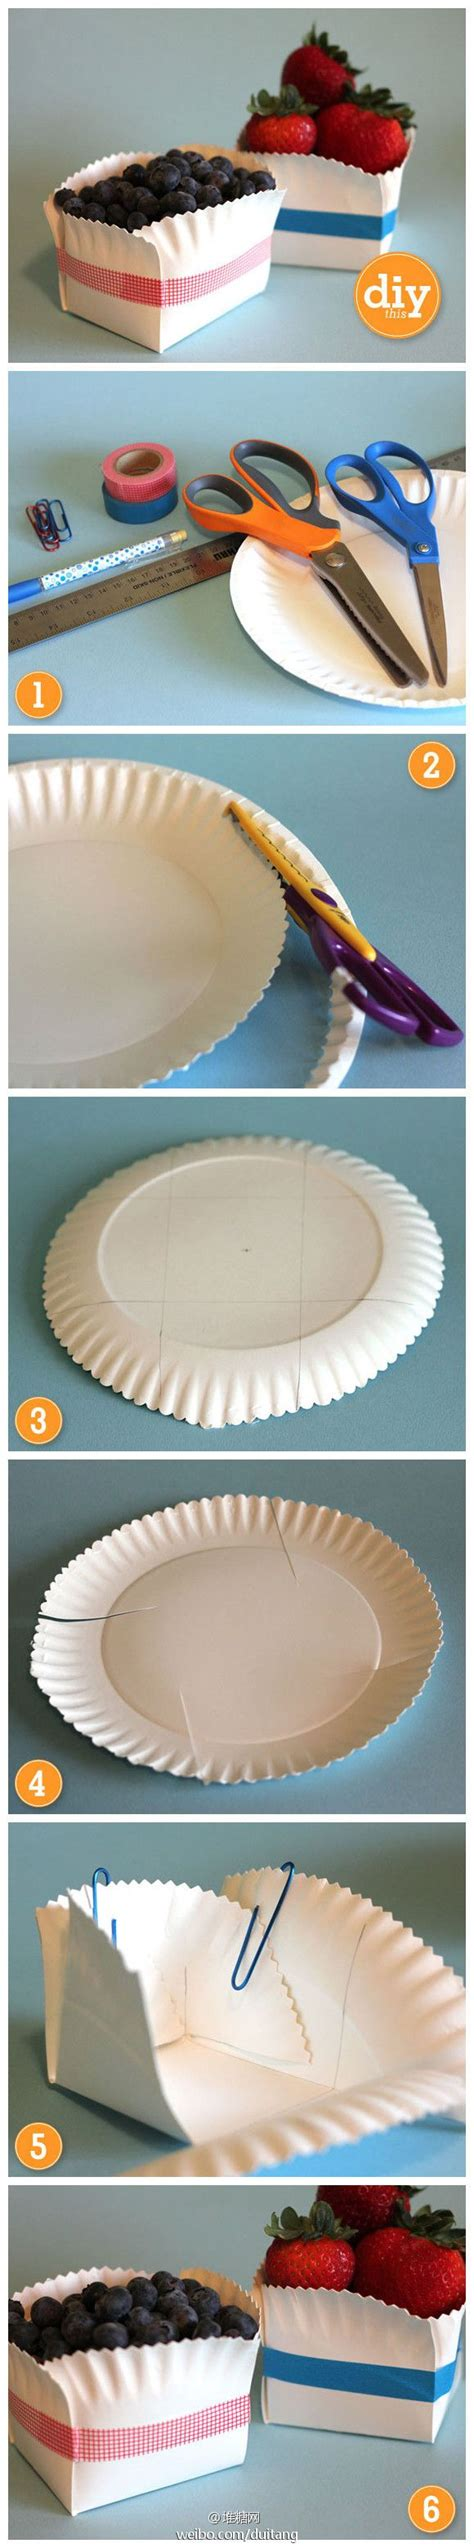 Things To Make With Paper Plates - would a basket make organizing things a lot easier see